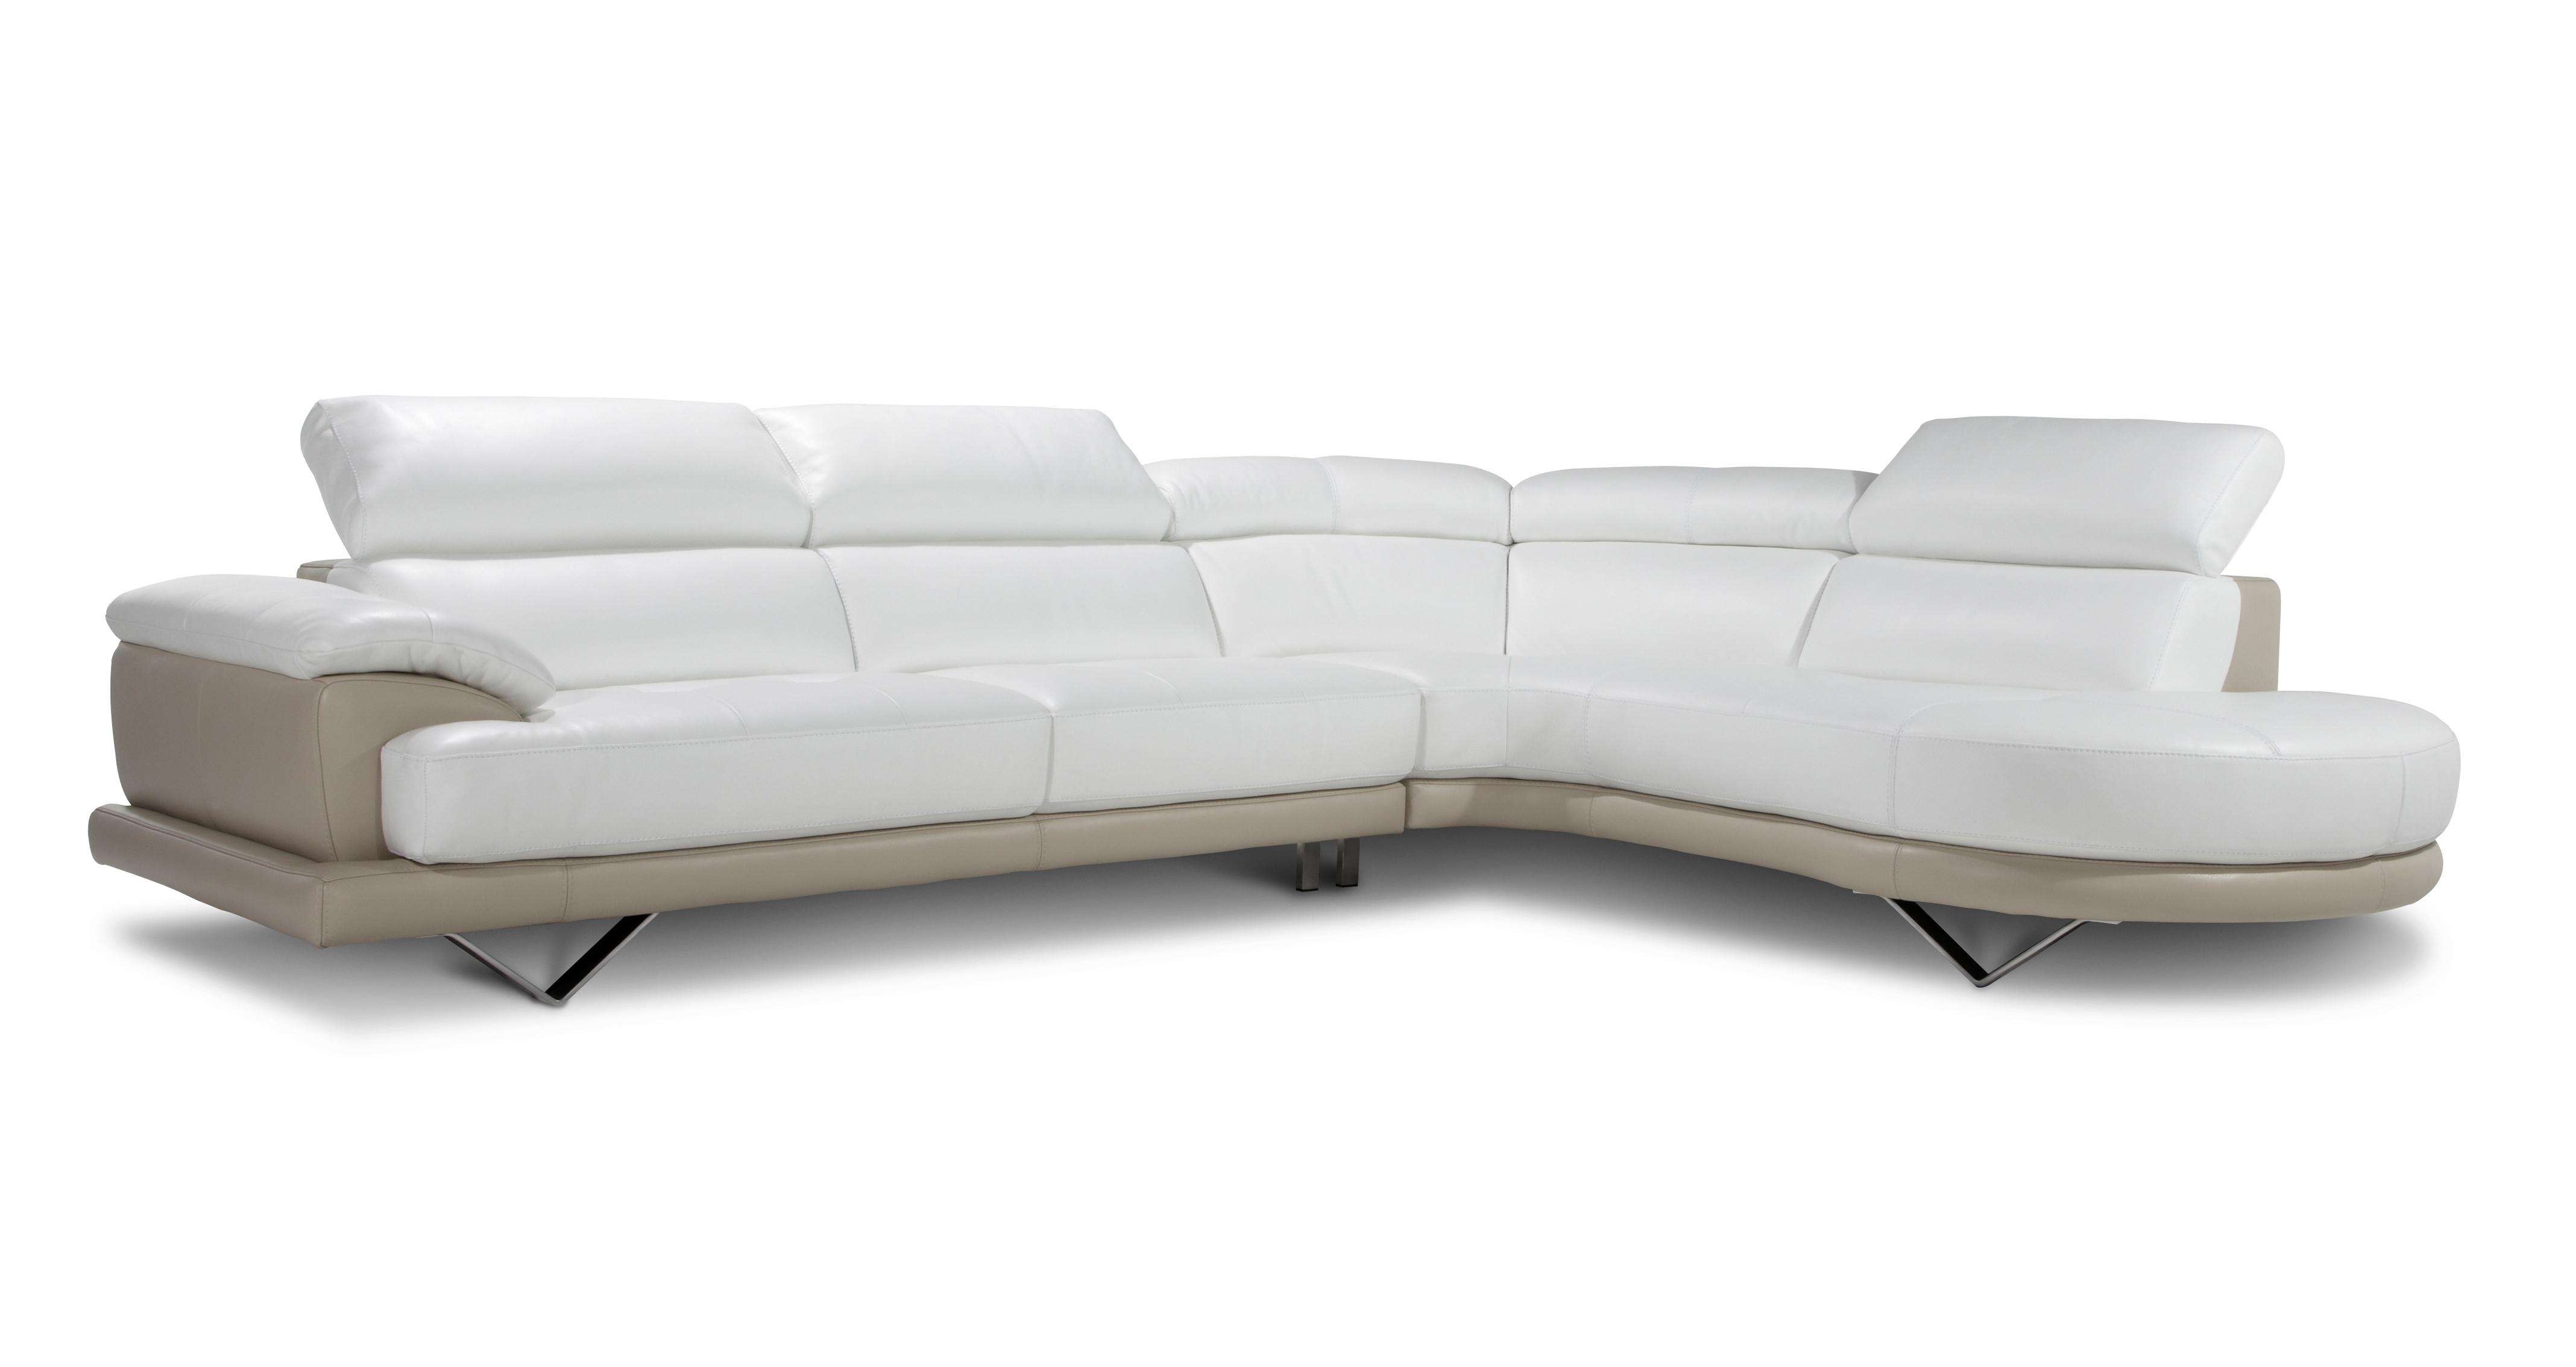 Dfs Black And White Sofas Leather Infosofa Co